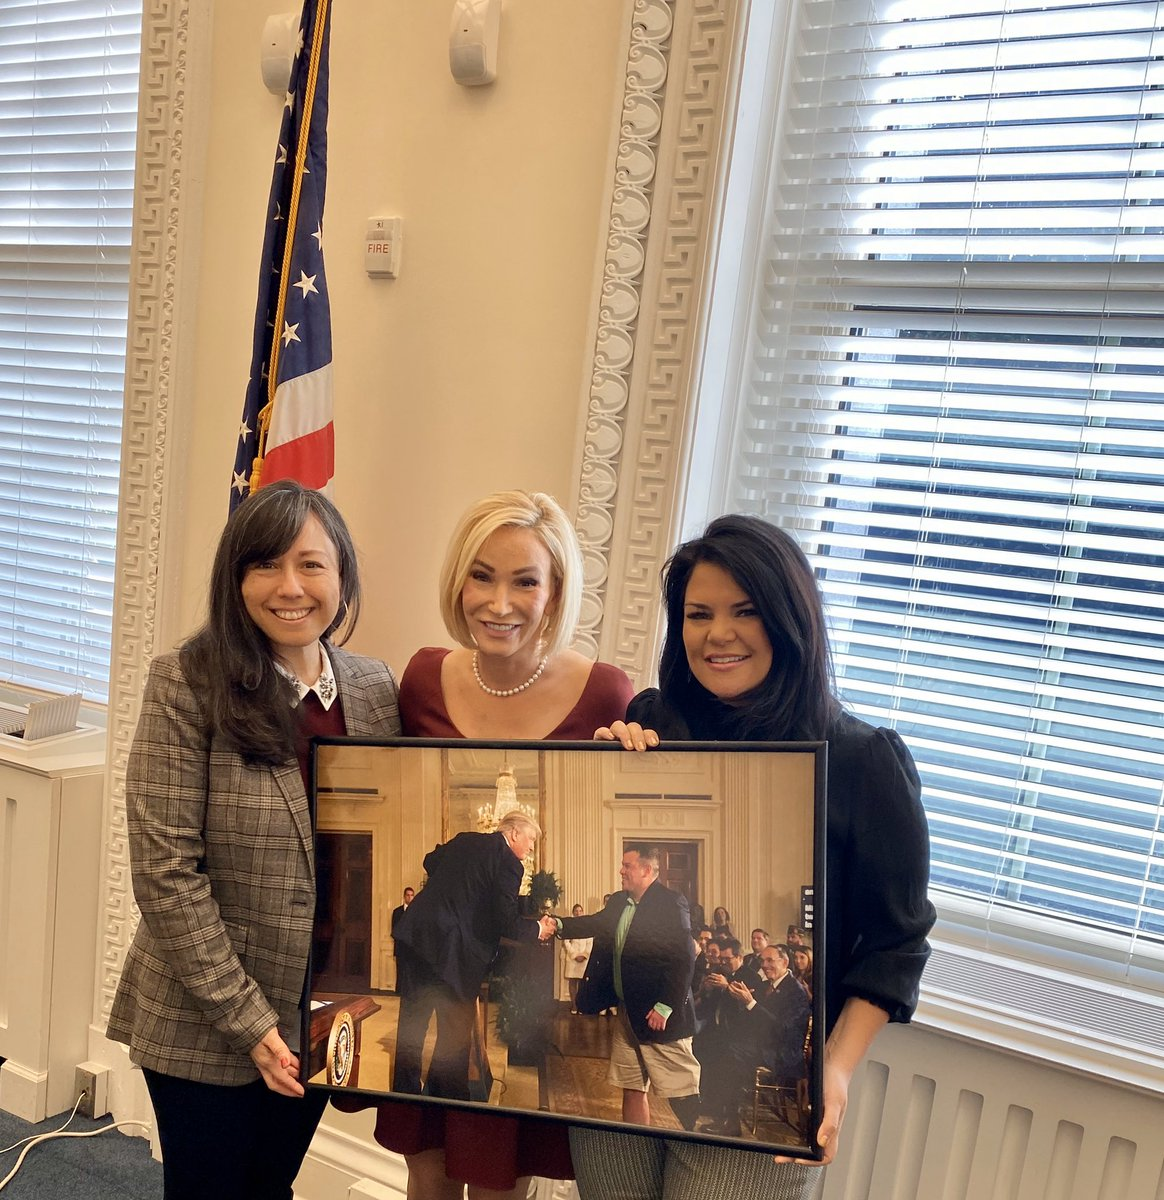 I am so grateful Mike's photo hangs in this White House. I know how hard they work for families like ours that are carrying the weight of war at home. Thank you President @realDonaldTrump and team 🇺🇸